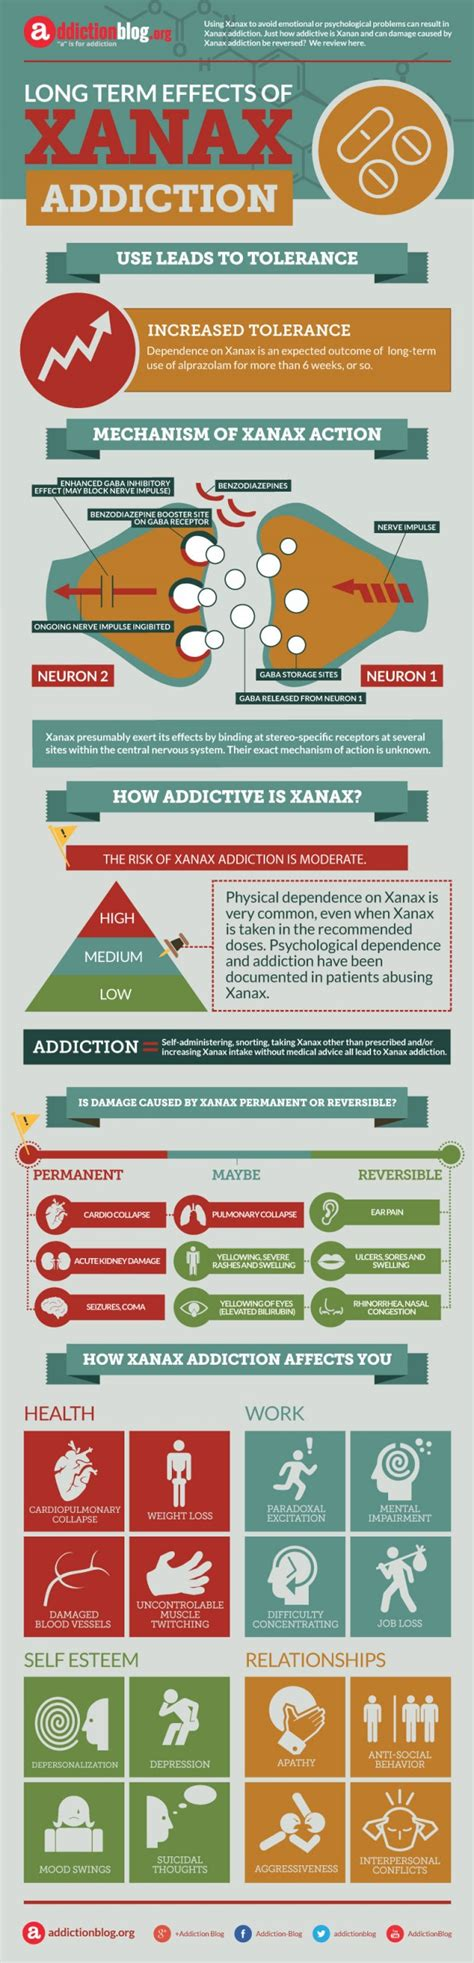 Does Ambien Impact A Detox by What Are Ambien Withdrawal Symptoms Addiction Autos